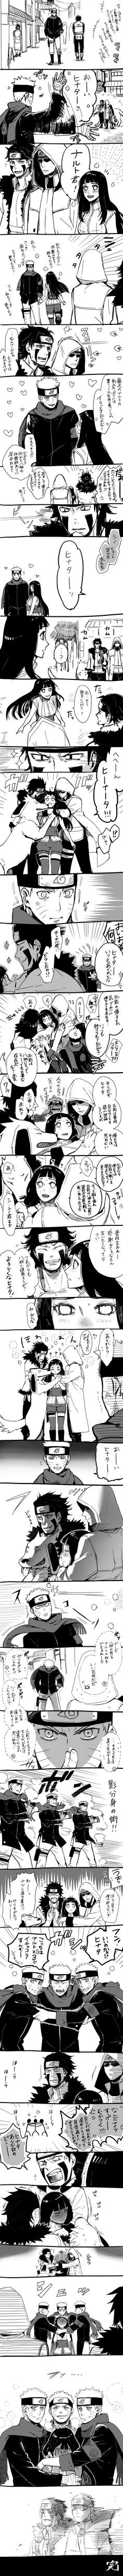 NARUTO/#1803391 - Zerochan Don't know what they says but it is funny! :D :D